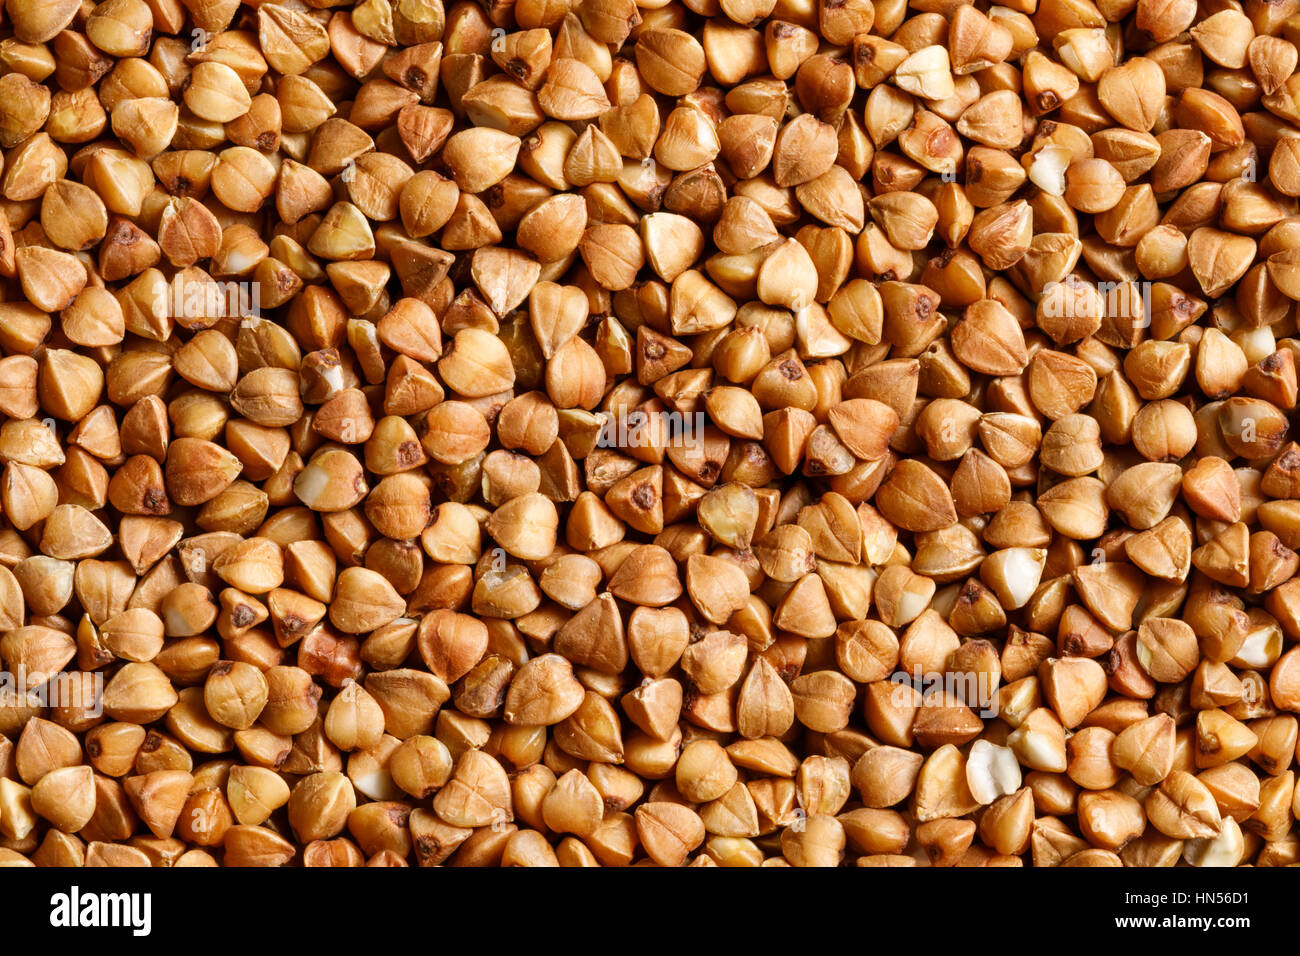 buckwheat raw food ingredient texture macro close up detailed Stock Photo